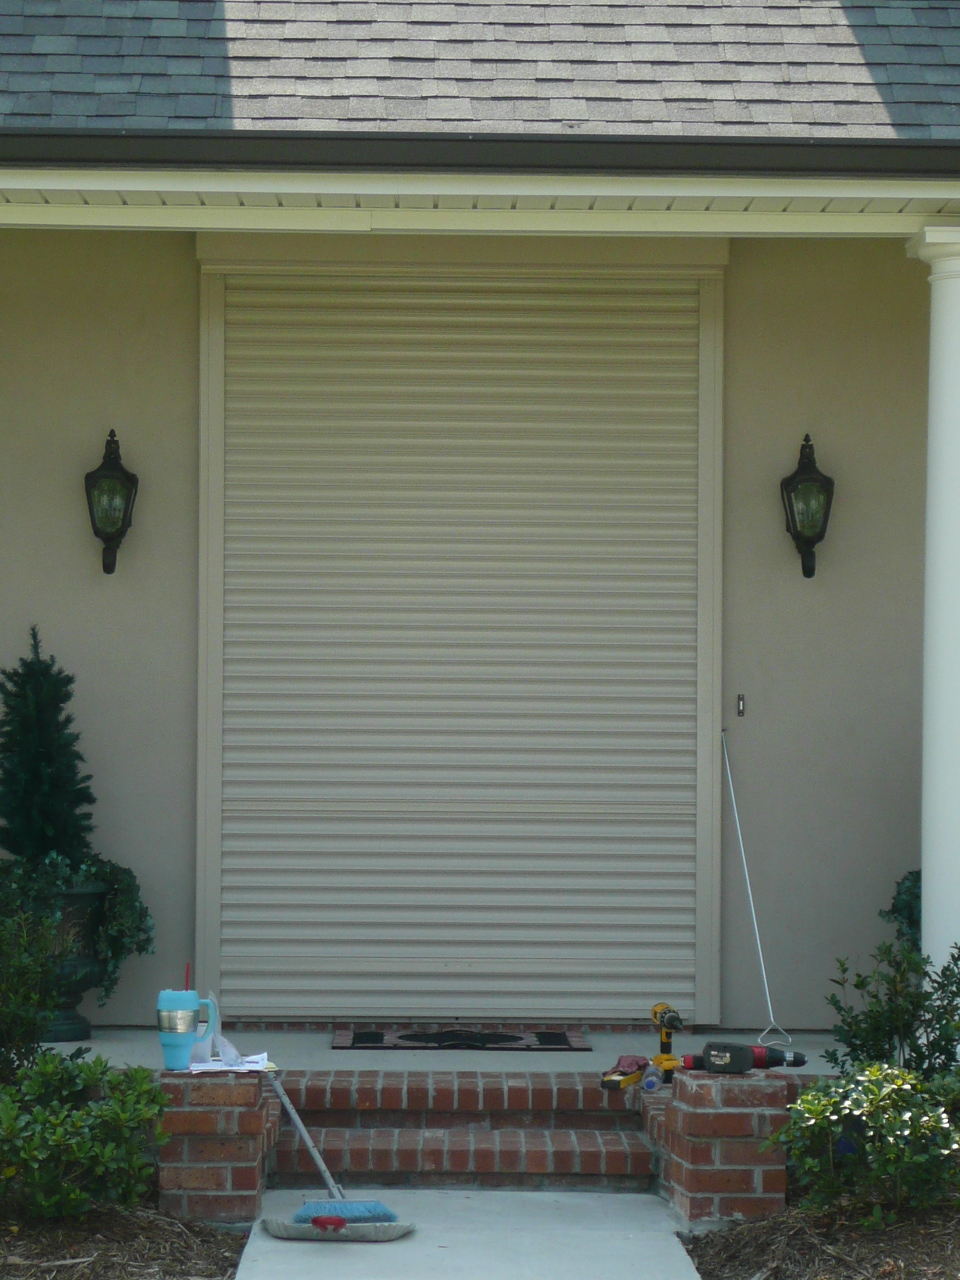 Roll up shutters nu code shutters for Roll up window shutters exterior